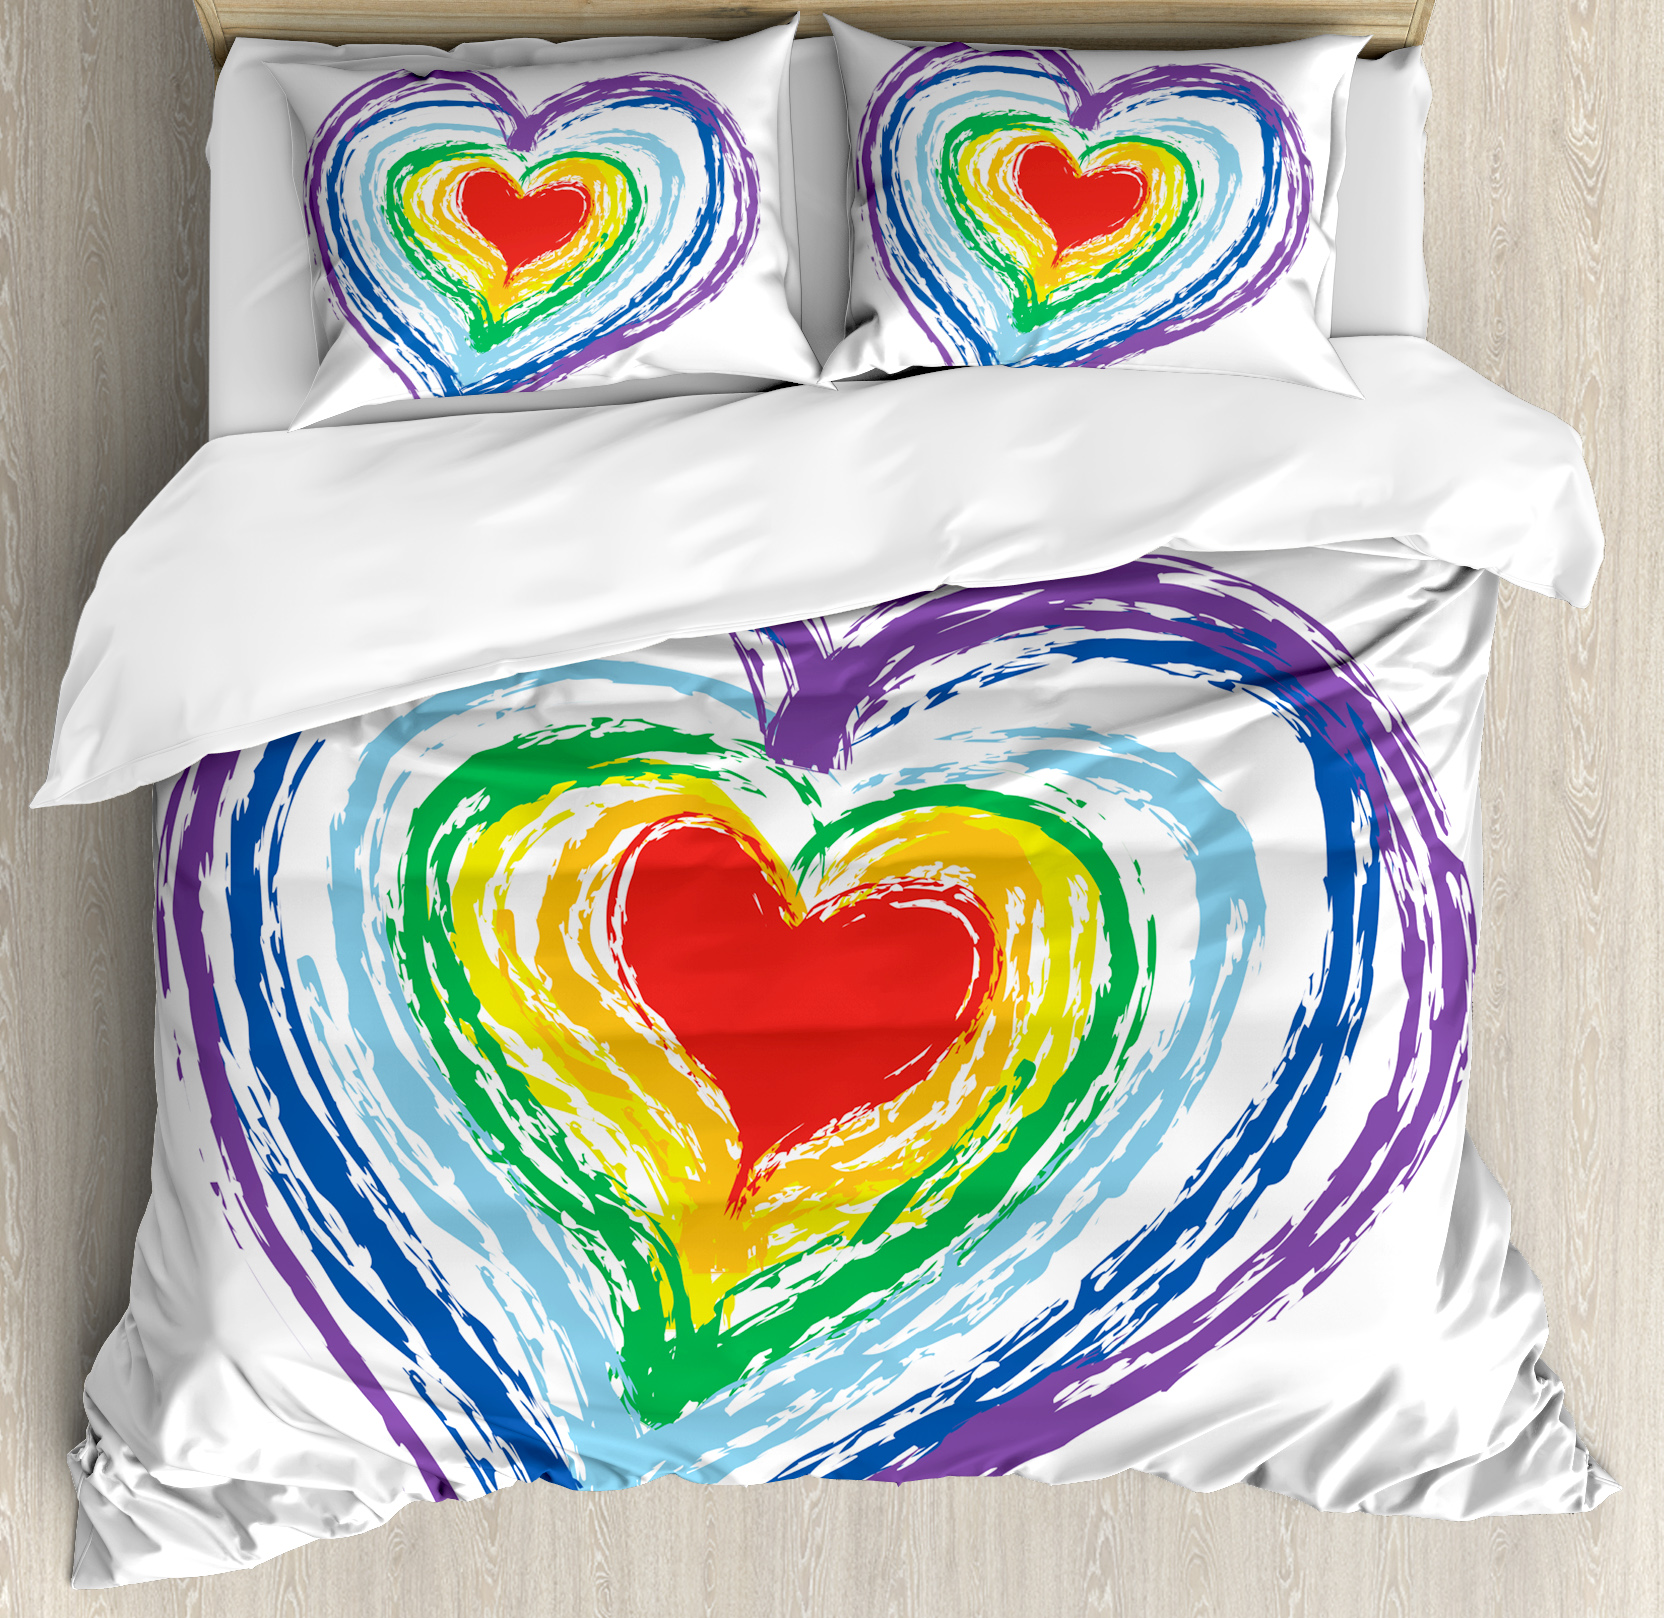 Doodle Queen Size Duvet Cover Set, Love Themed Nested Rainbow Heart with a Simplistic Style Vibrant Colored Work of Art, Decorative 3 Piece Bedding Set with 2 Pillow Shams, Multicolor, by Ambesonne